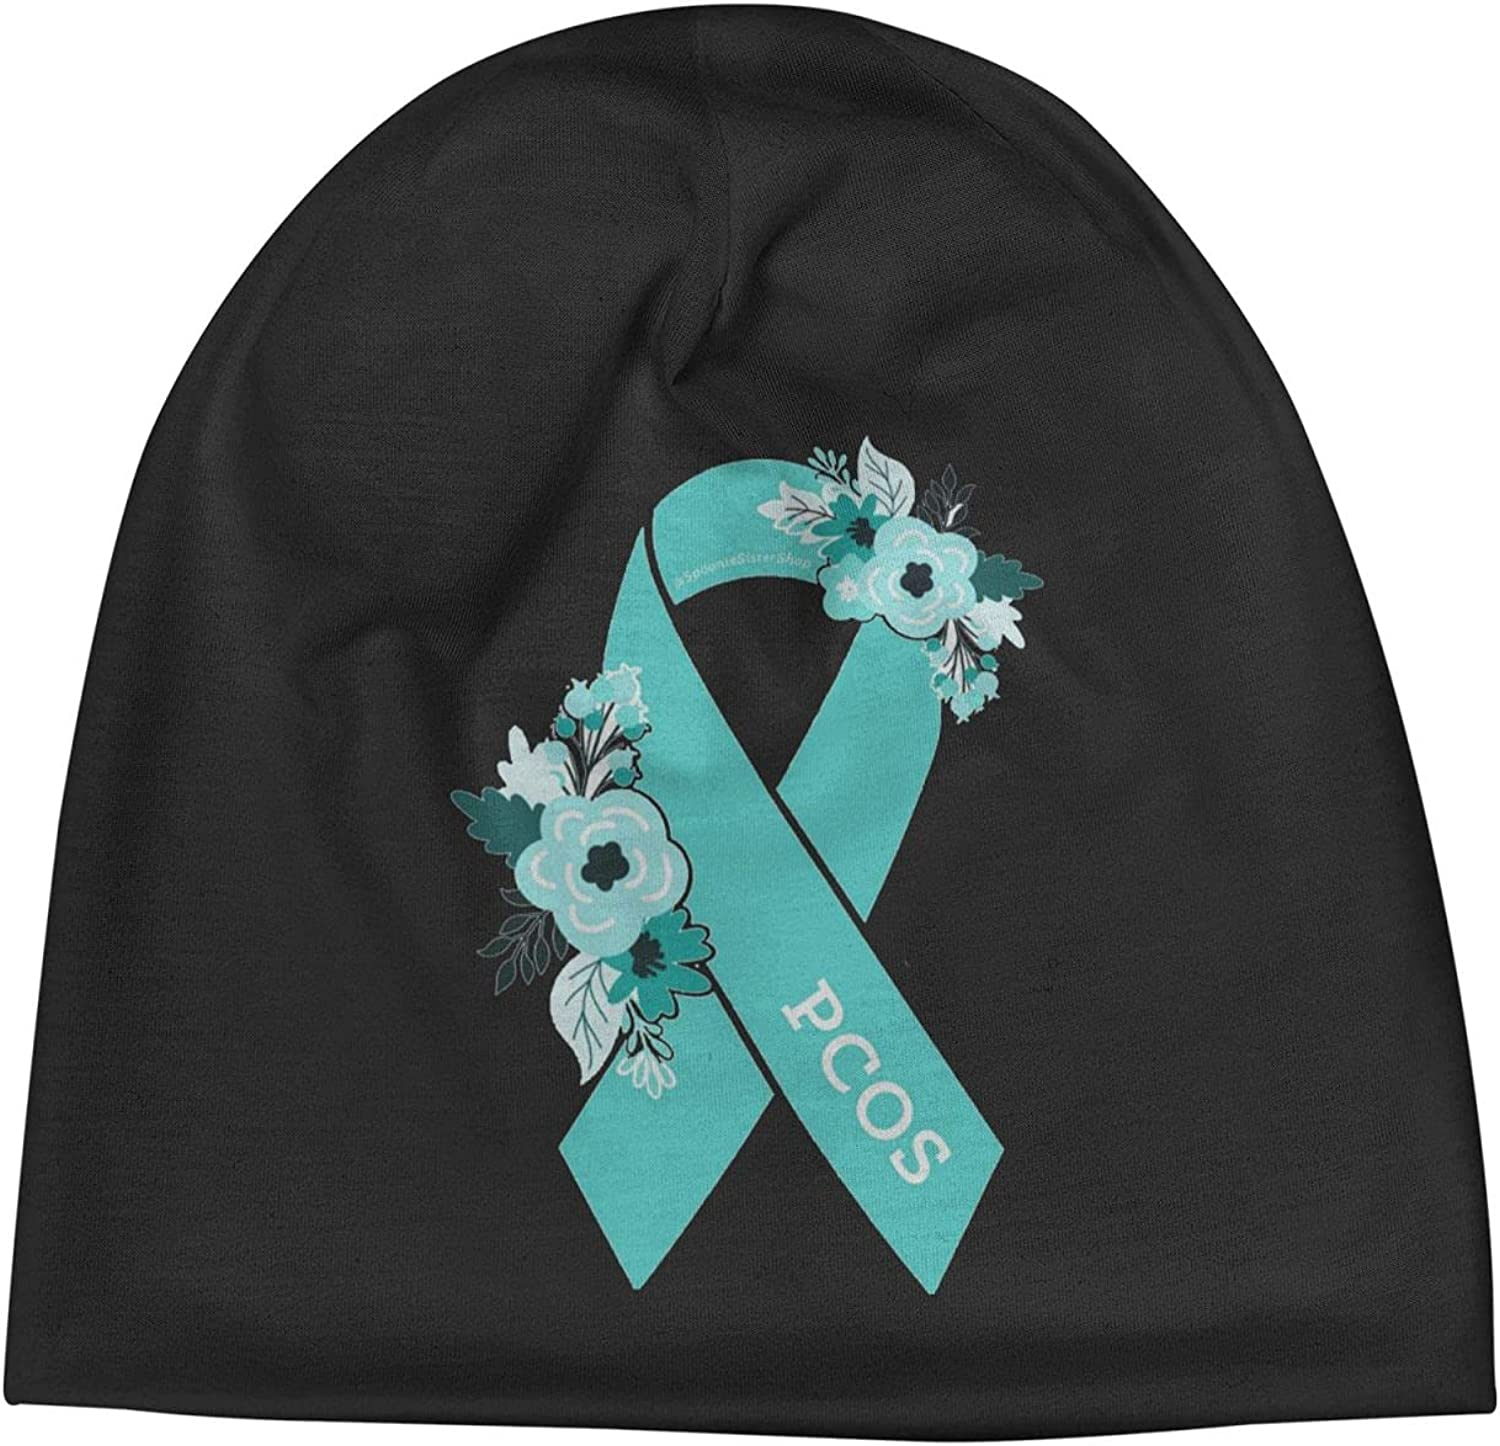 PCOS Awareness1 Slogan Unisex Beanie Vintage Cap Recommended Warm Hats Online limited product Knit